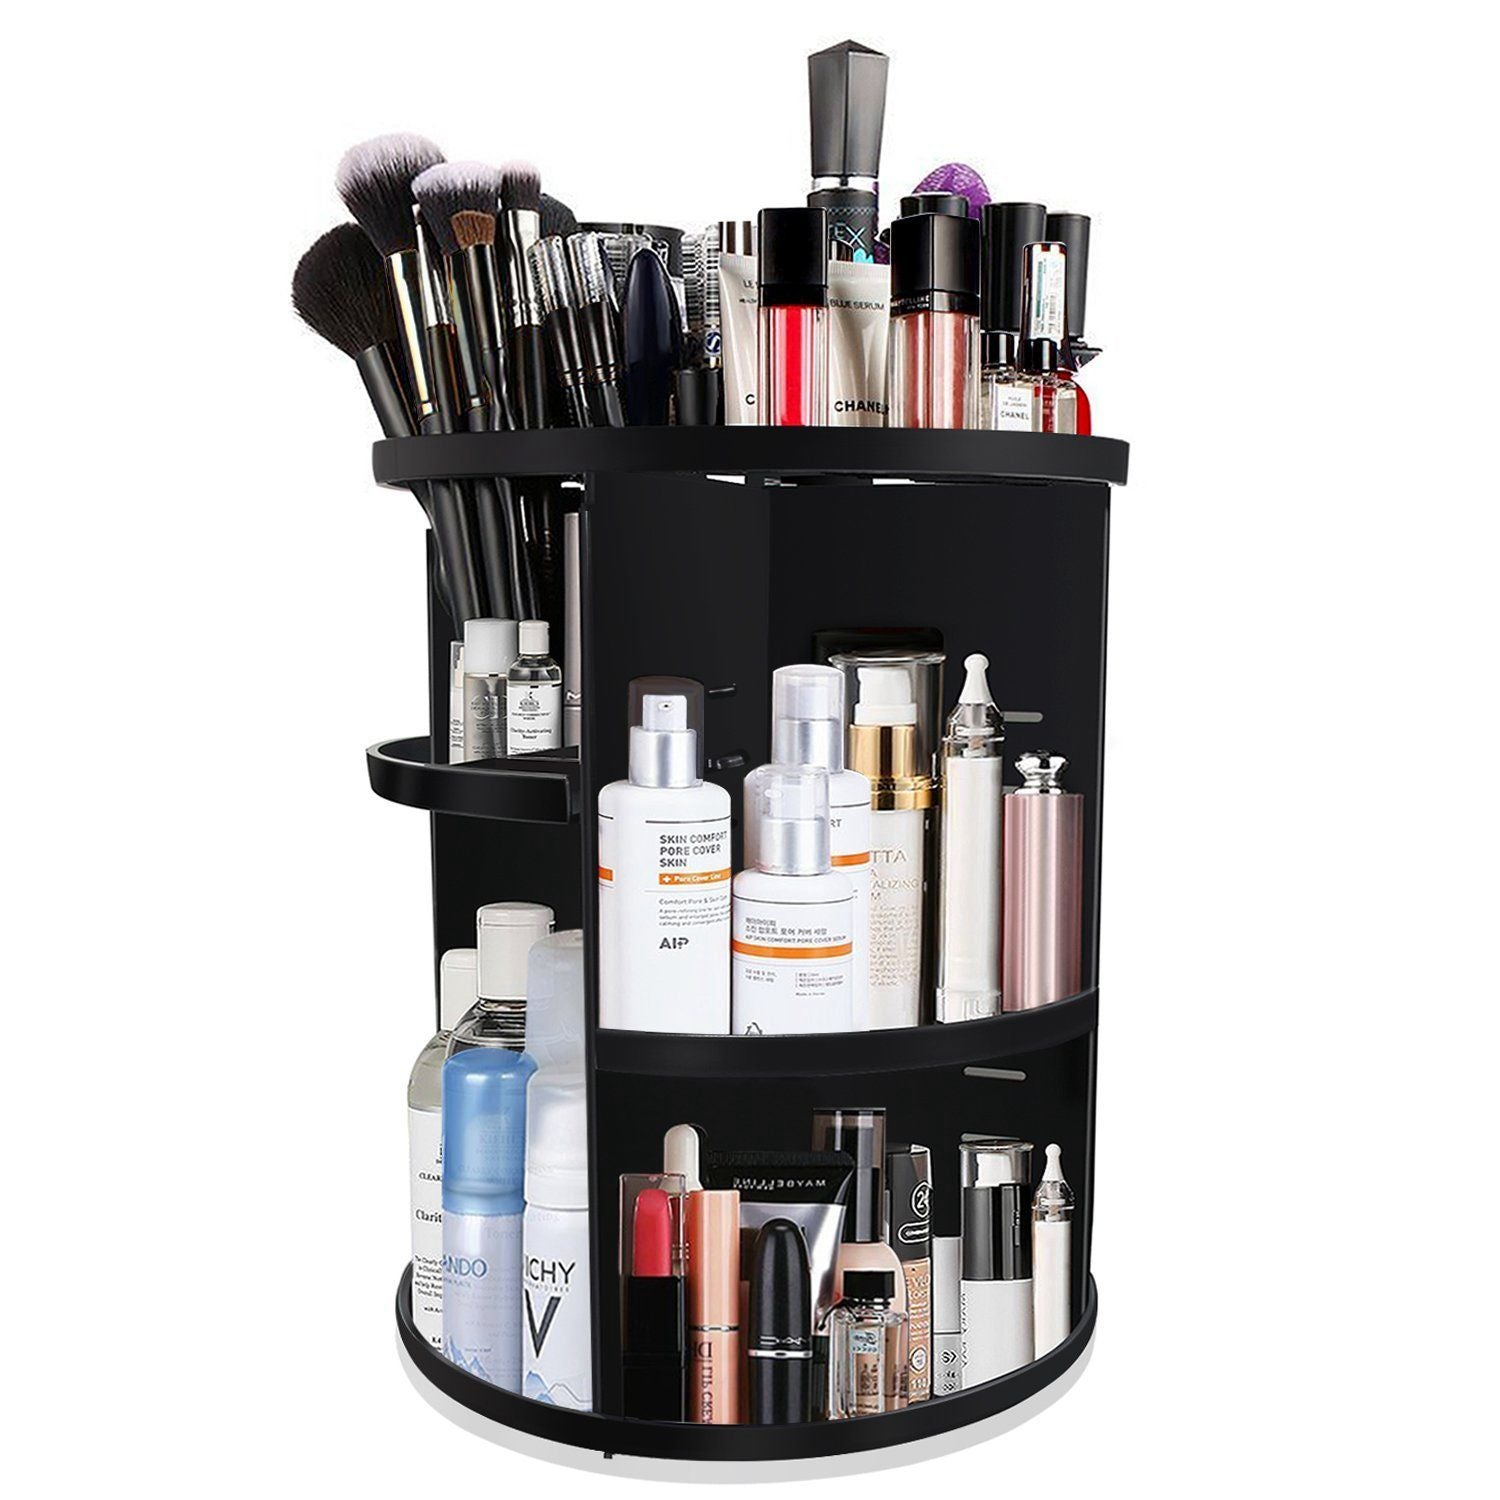 360 Degree Rotating MakeUp Organizers and Storage Box Gift For Women Adjustable Multi-Function Cosmetic Case Brush Holder Stand Countertop